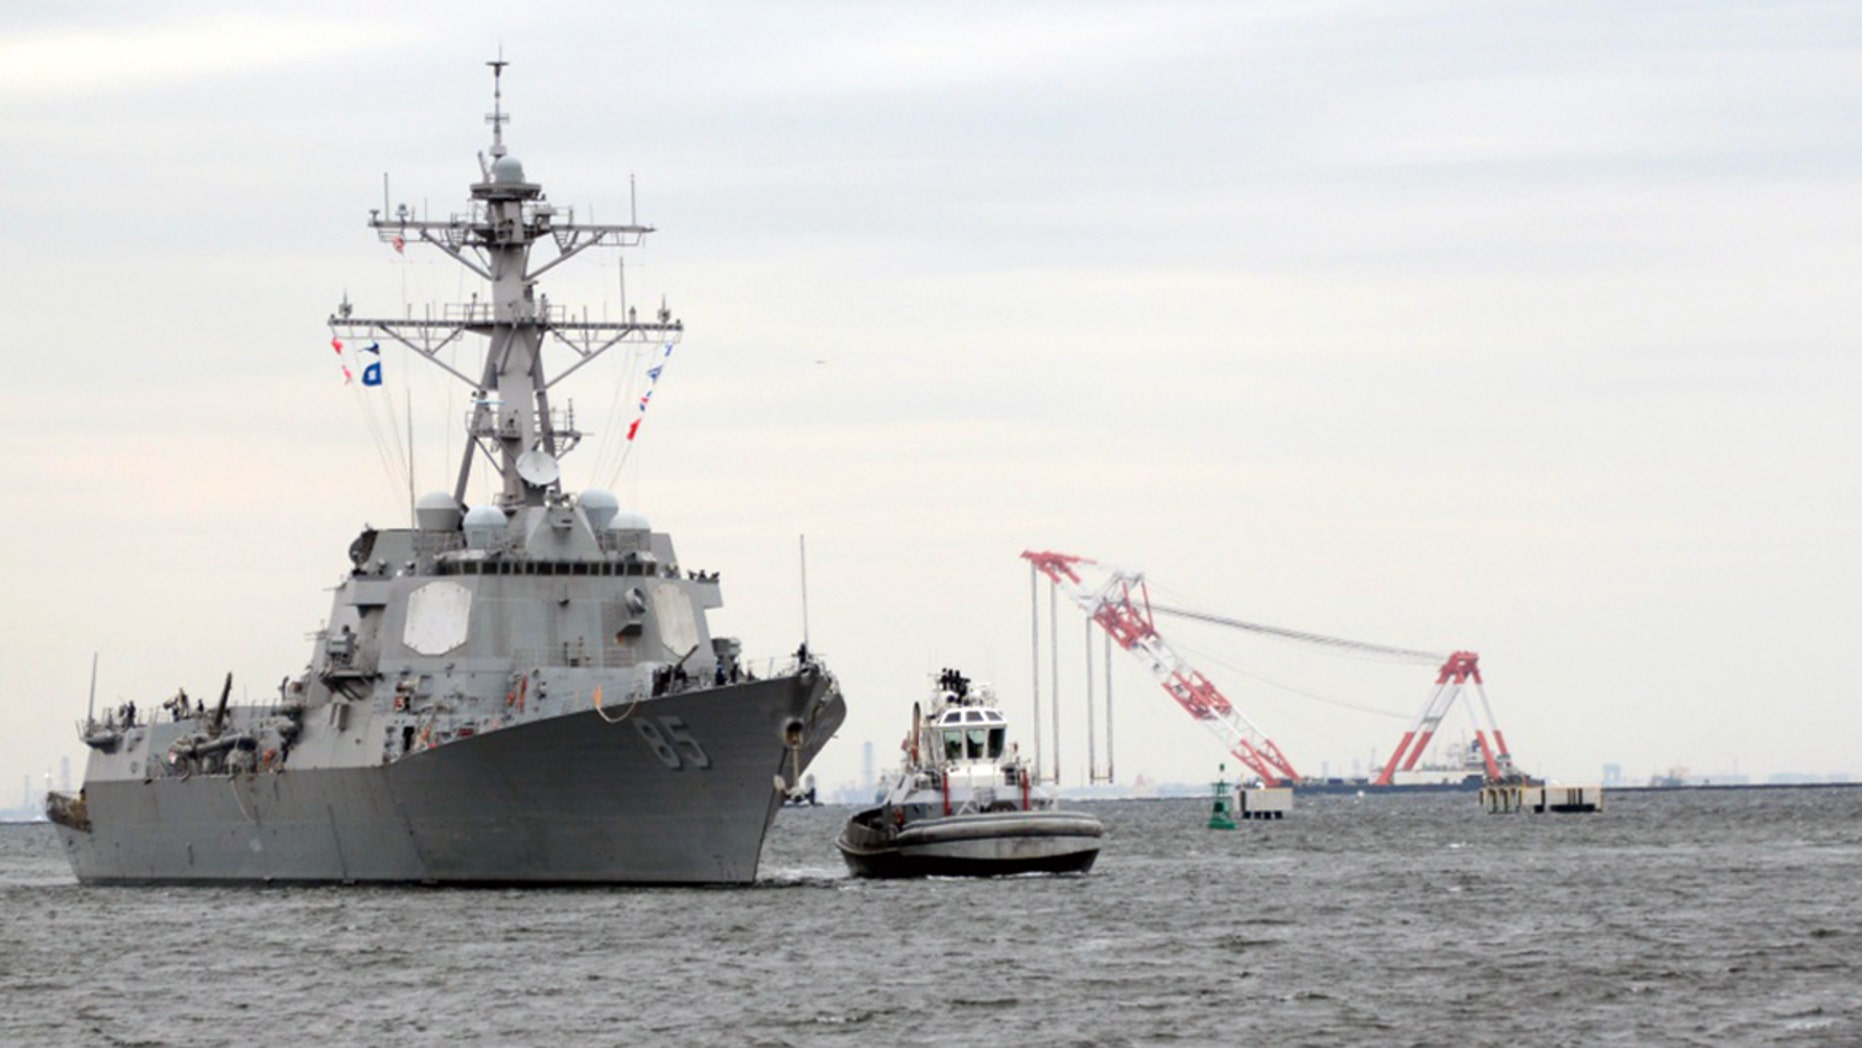 USA warship sails in Sea of Japan waters claimed by Russian Federation